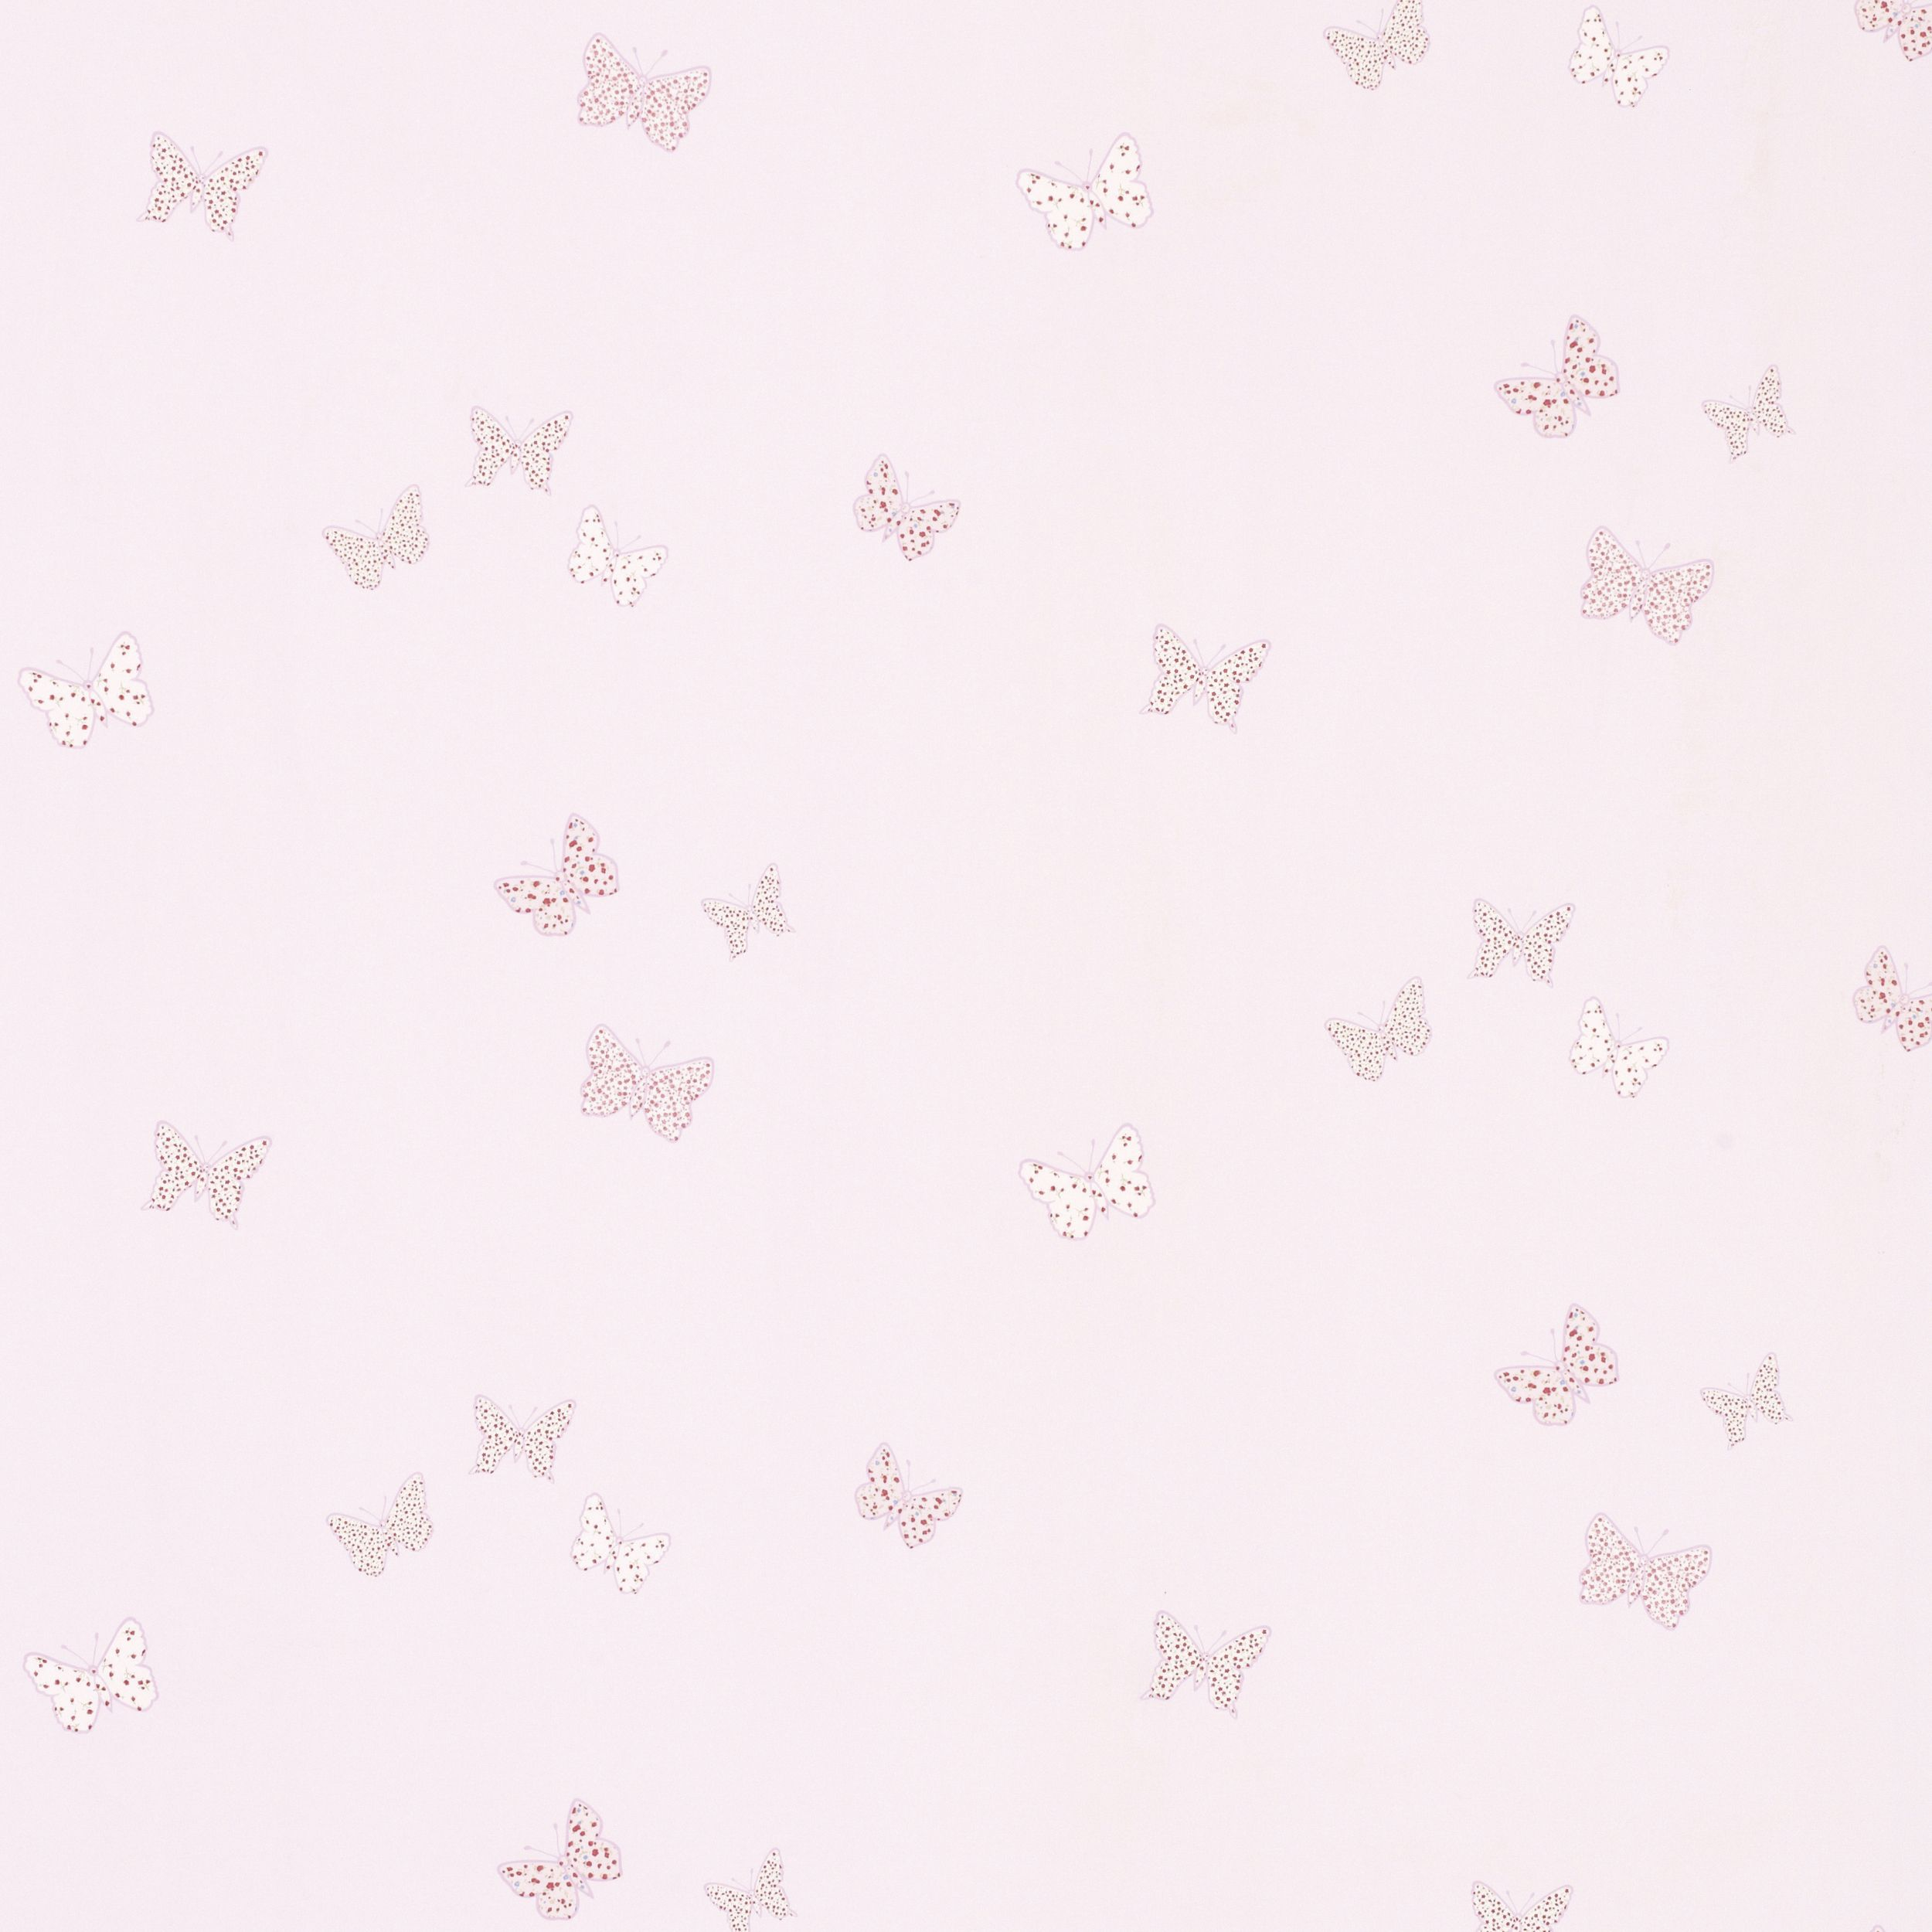 Bella butterfly childrens wallpaper pink at laura ashley for Kids room wallpaper texture